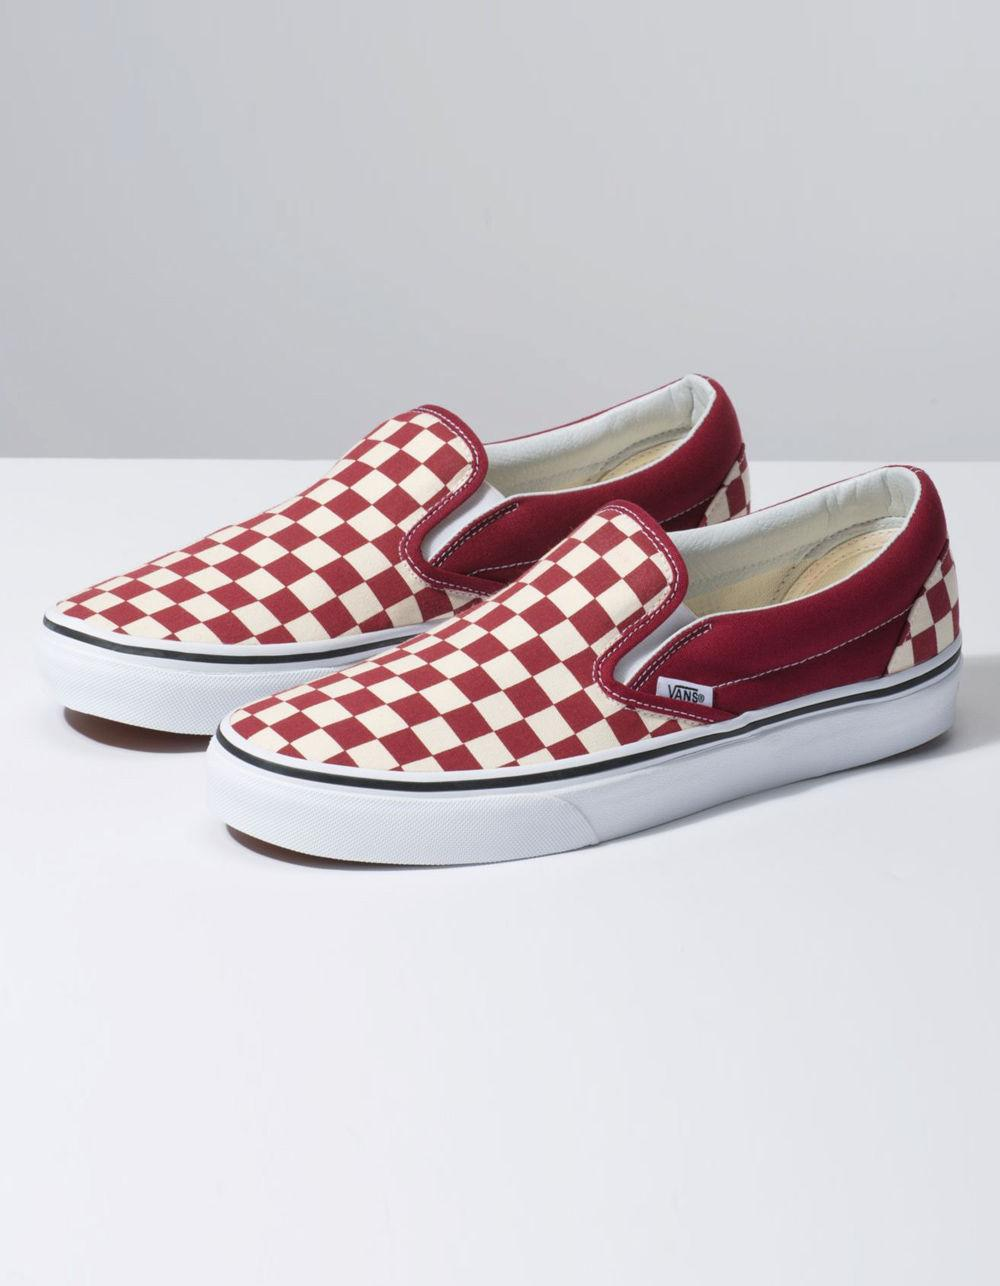 d64c7d24b1 Lyst - Vans Checkerboard Classic Slip-on Rumba Red   True White Shoes in Red